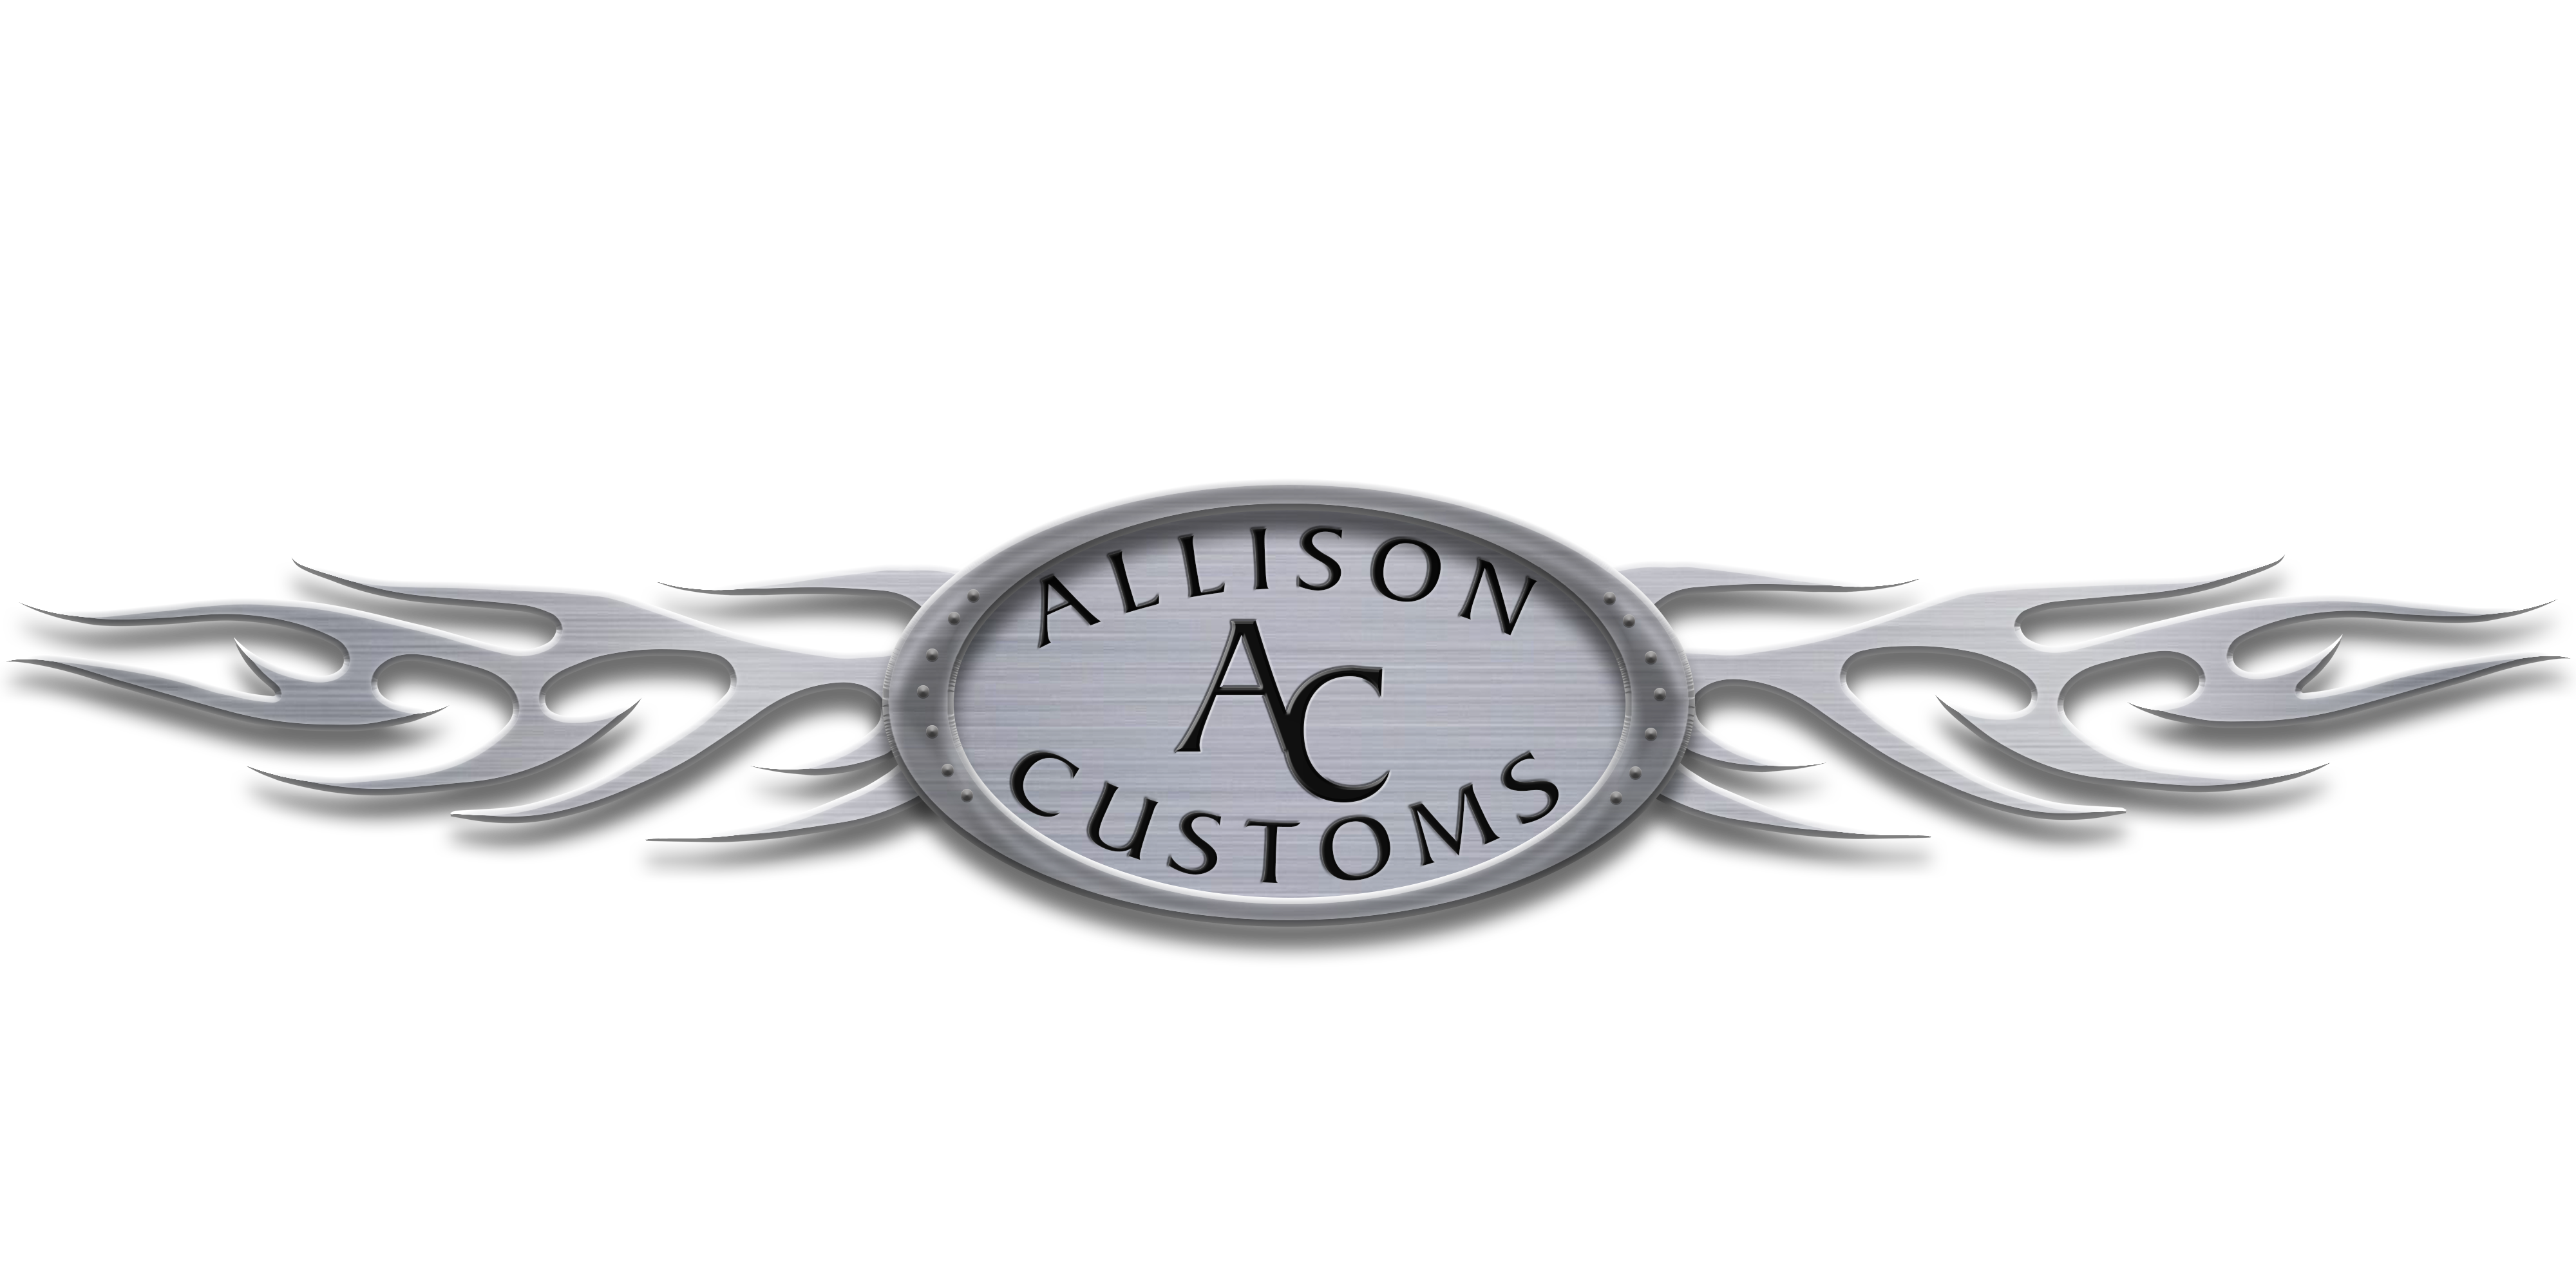 Allison Customs